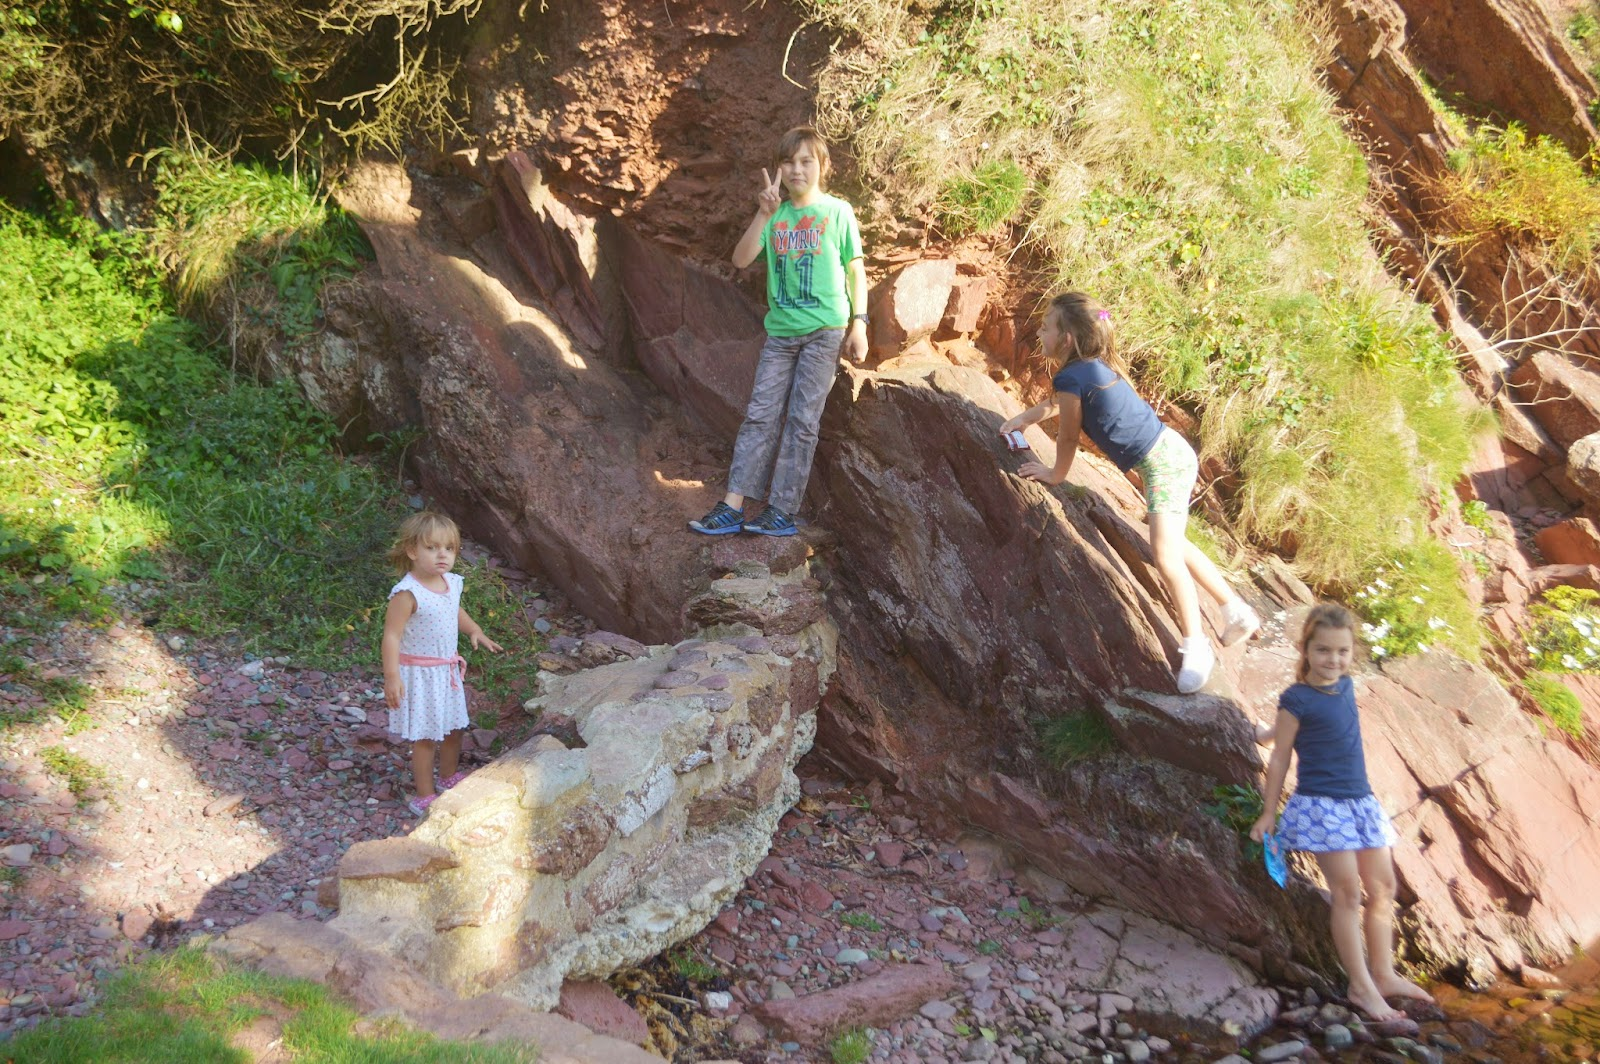 Monk Haven Pembrokeshire Wales Church Beach Rope Swing Family Fun day out